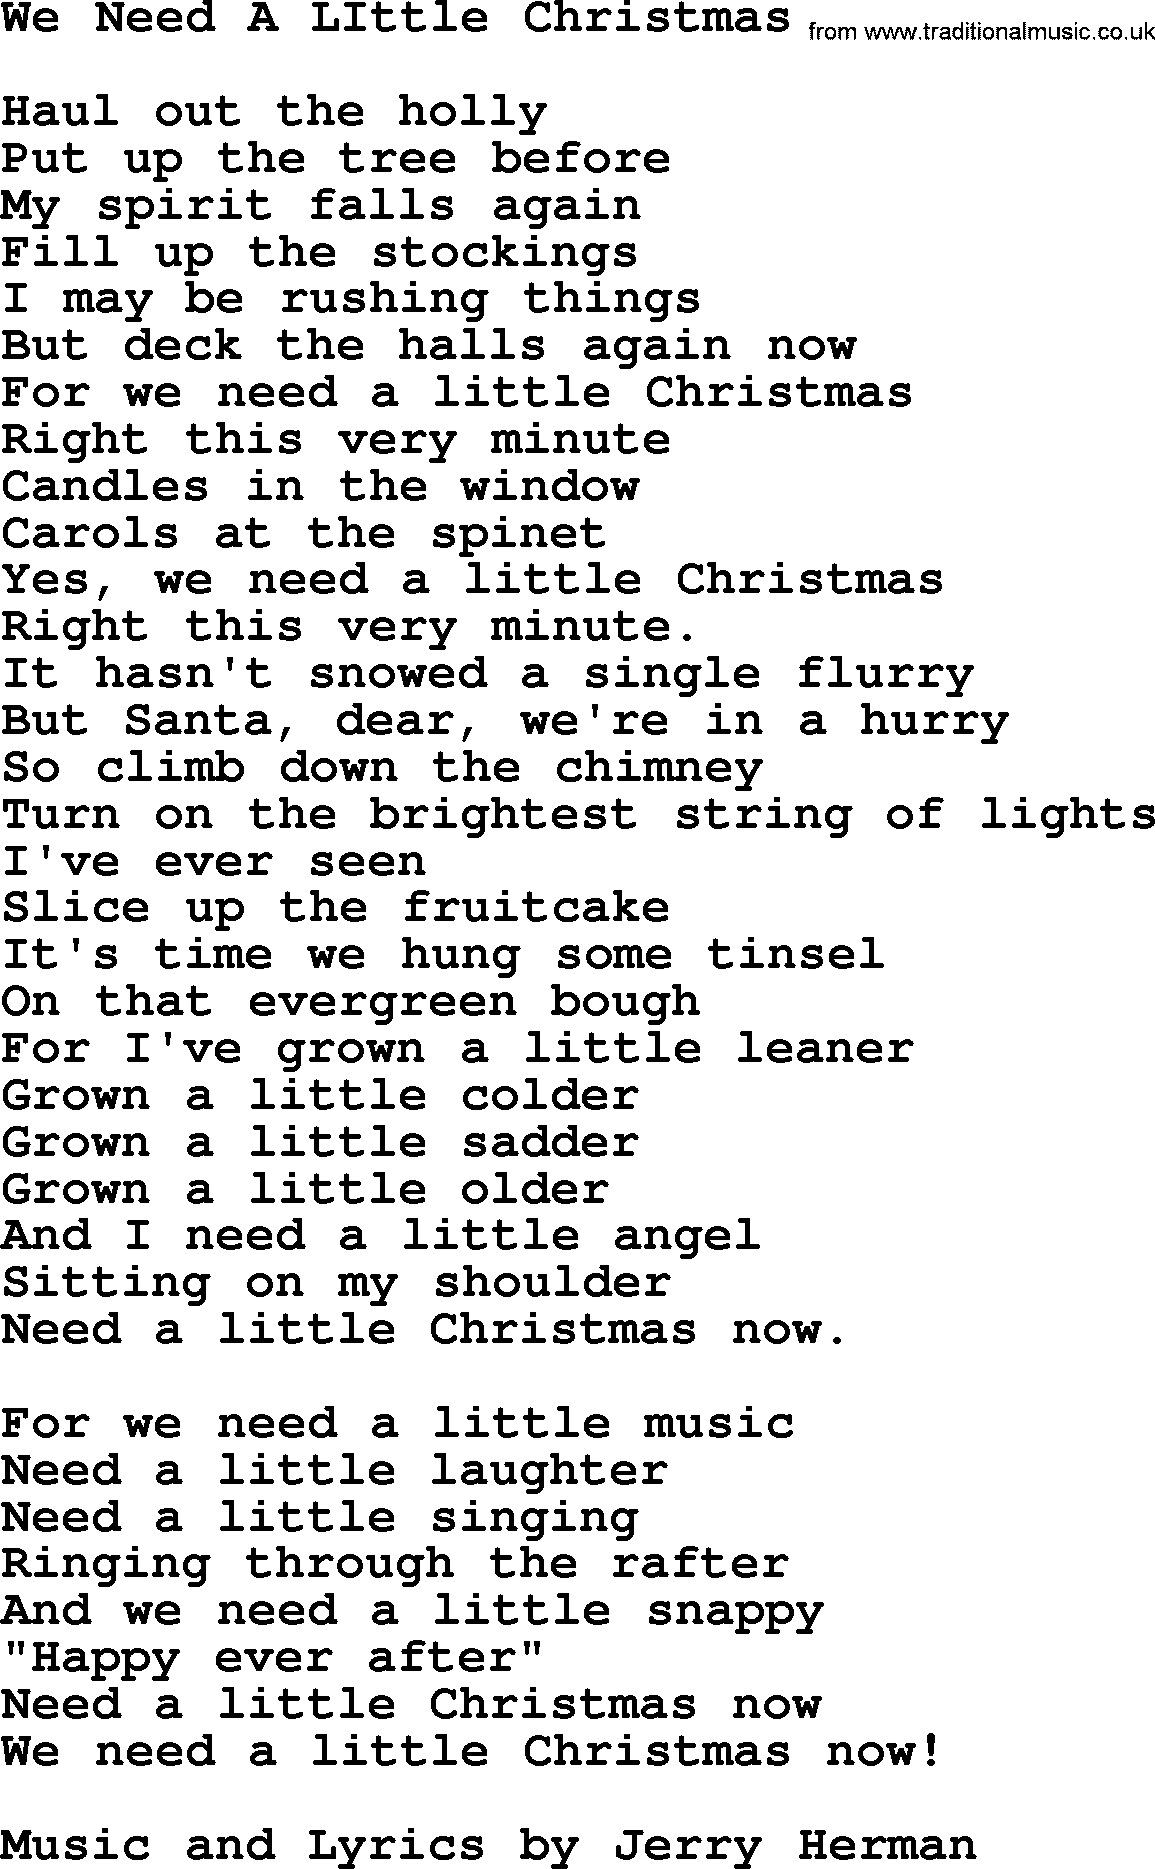 We Need A Little Christmas, by The Byrds - lyrics with pdf